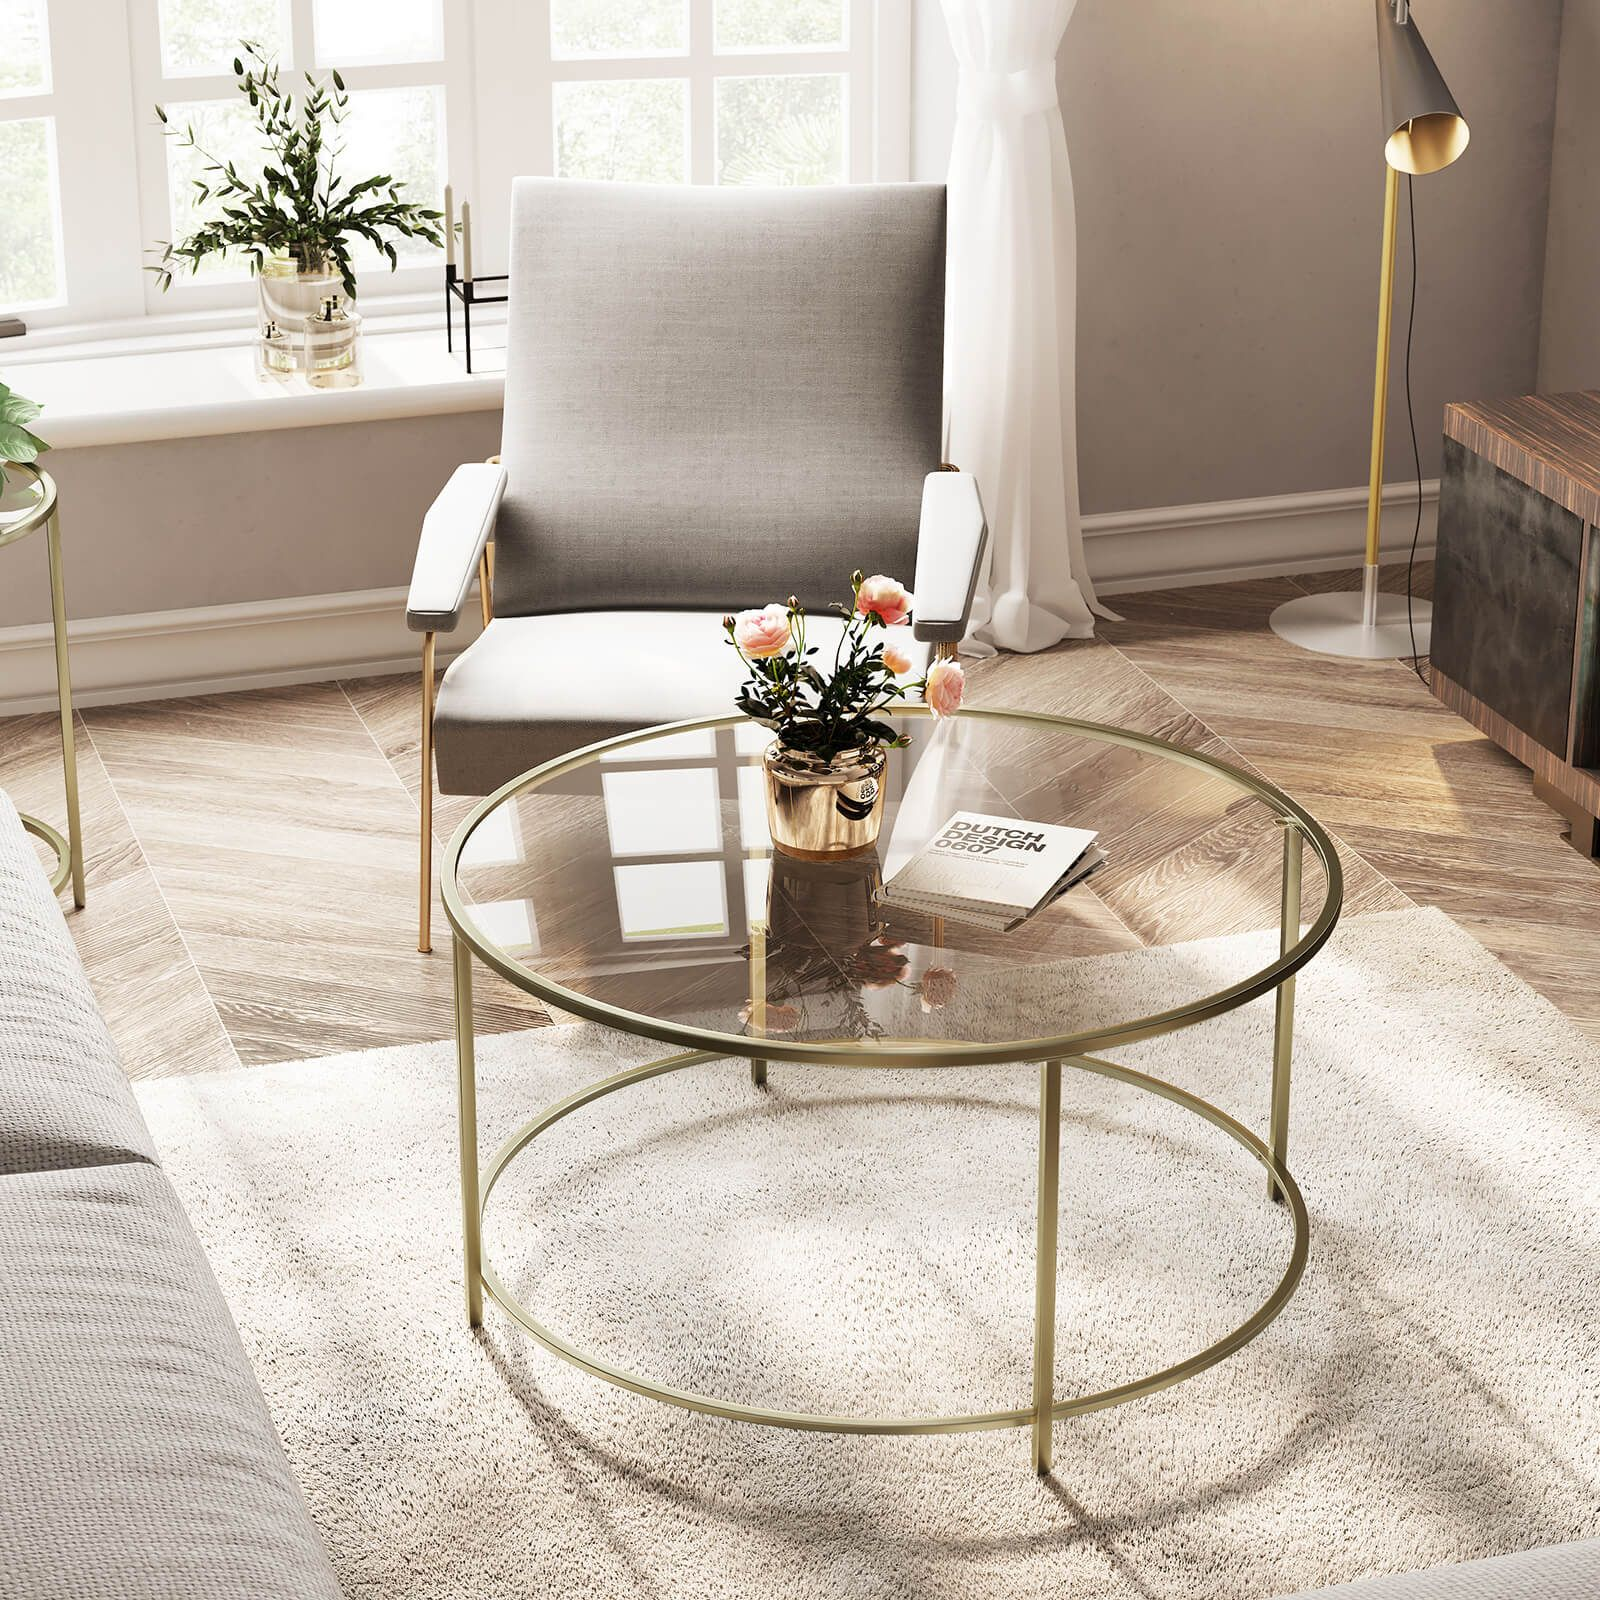 Round Glass Coffee Table In 2020 Glass Coffee Table Decor Living Room Table Table Decor Living Room #round #glass #tables #for #living #room